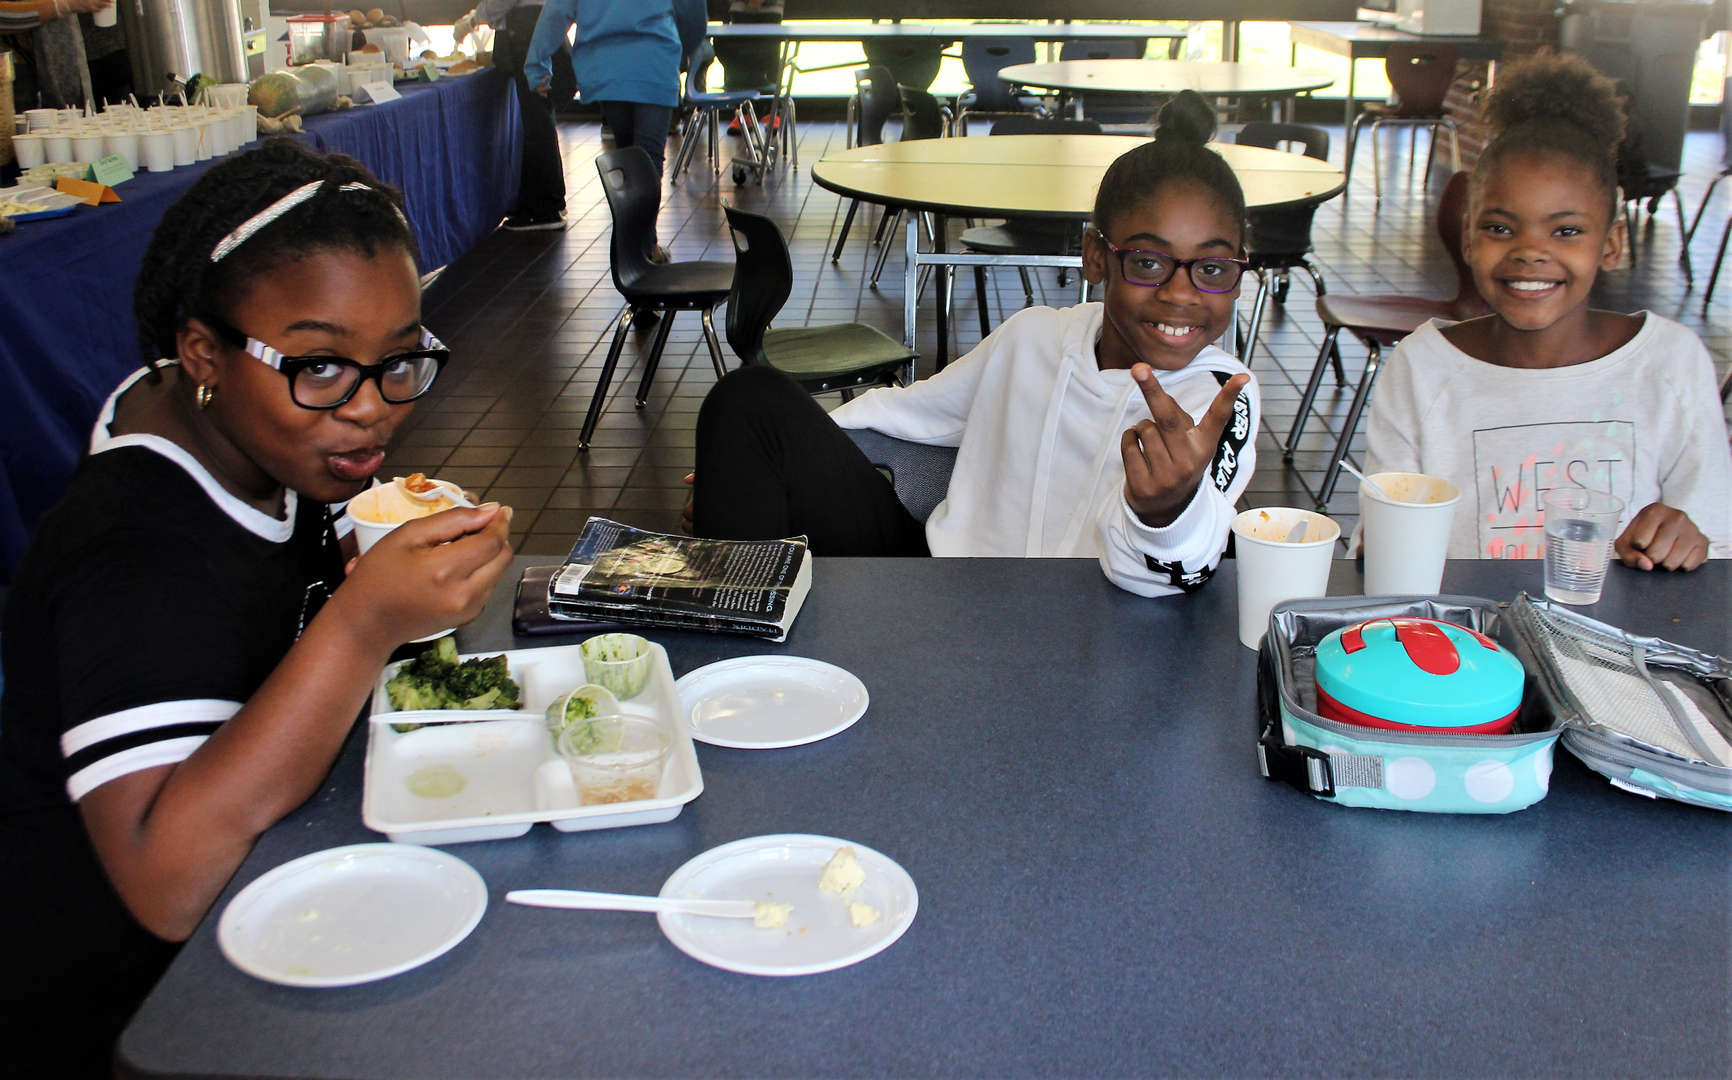 Three girls are eating soup in the cafeteria.